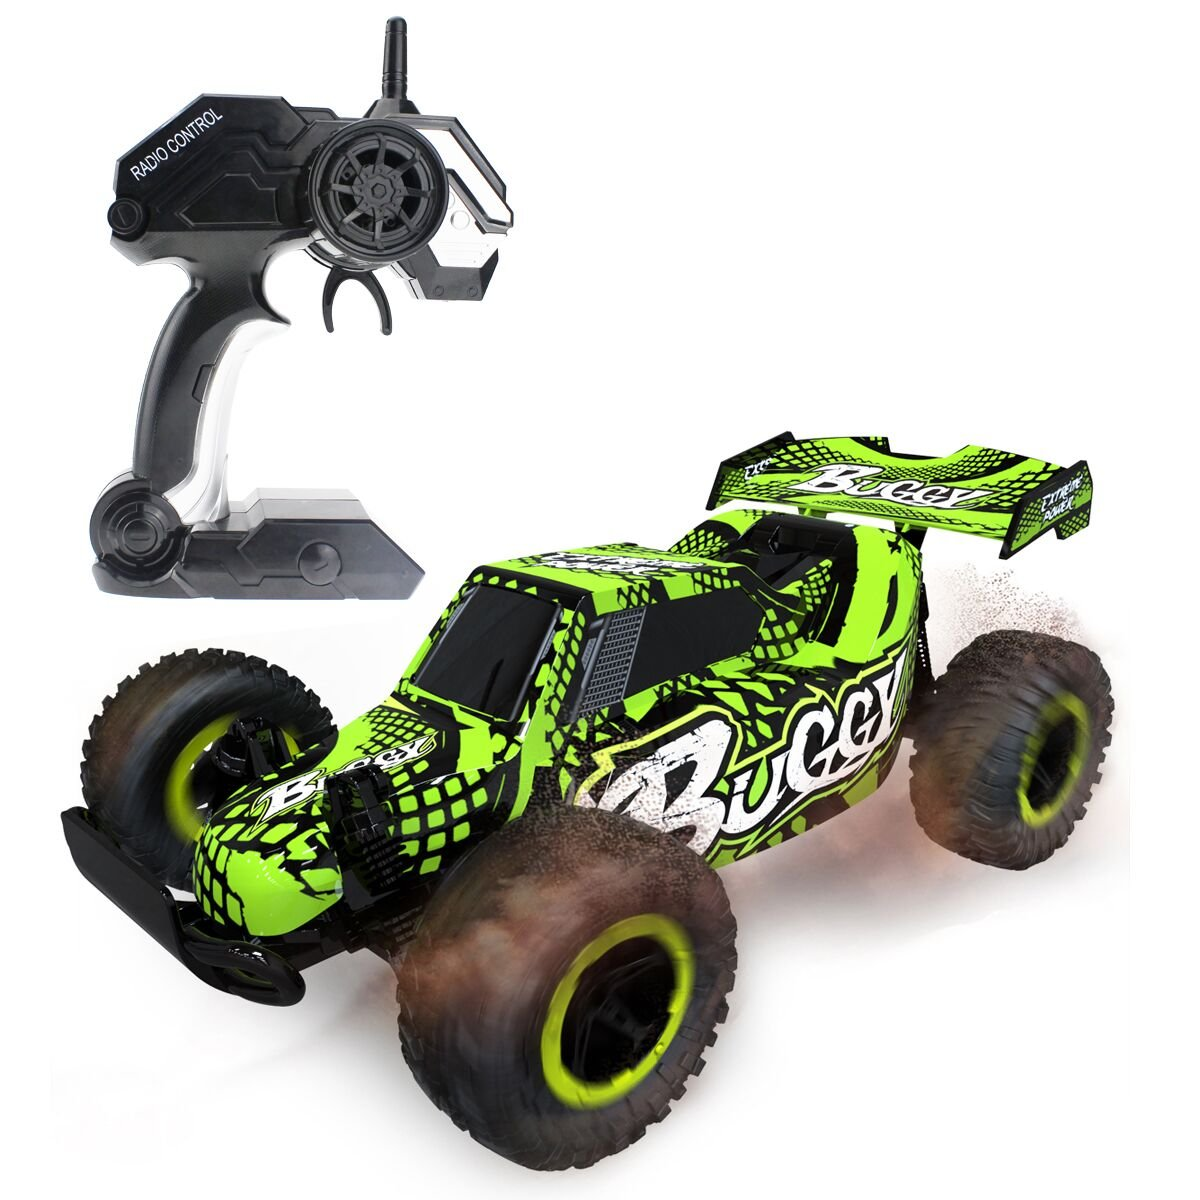 Hugine 1:16 2.4G RC Car Off Road Vehicle High Speed Racing Monster Truck 20km/h Buggy Independent Suspension Radio Control Cars Toys (Green)